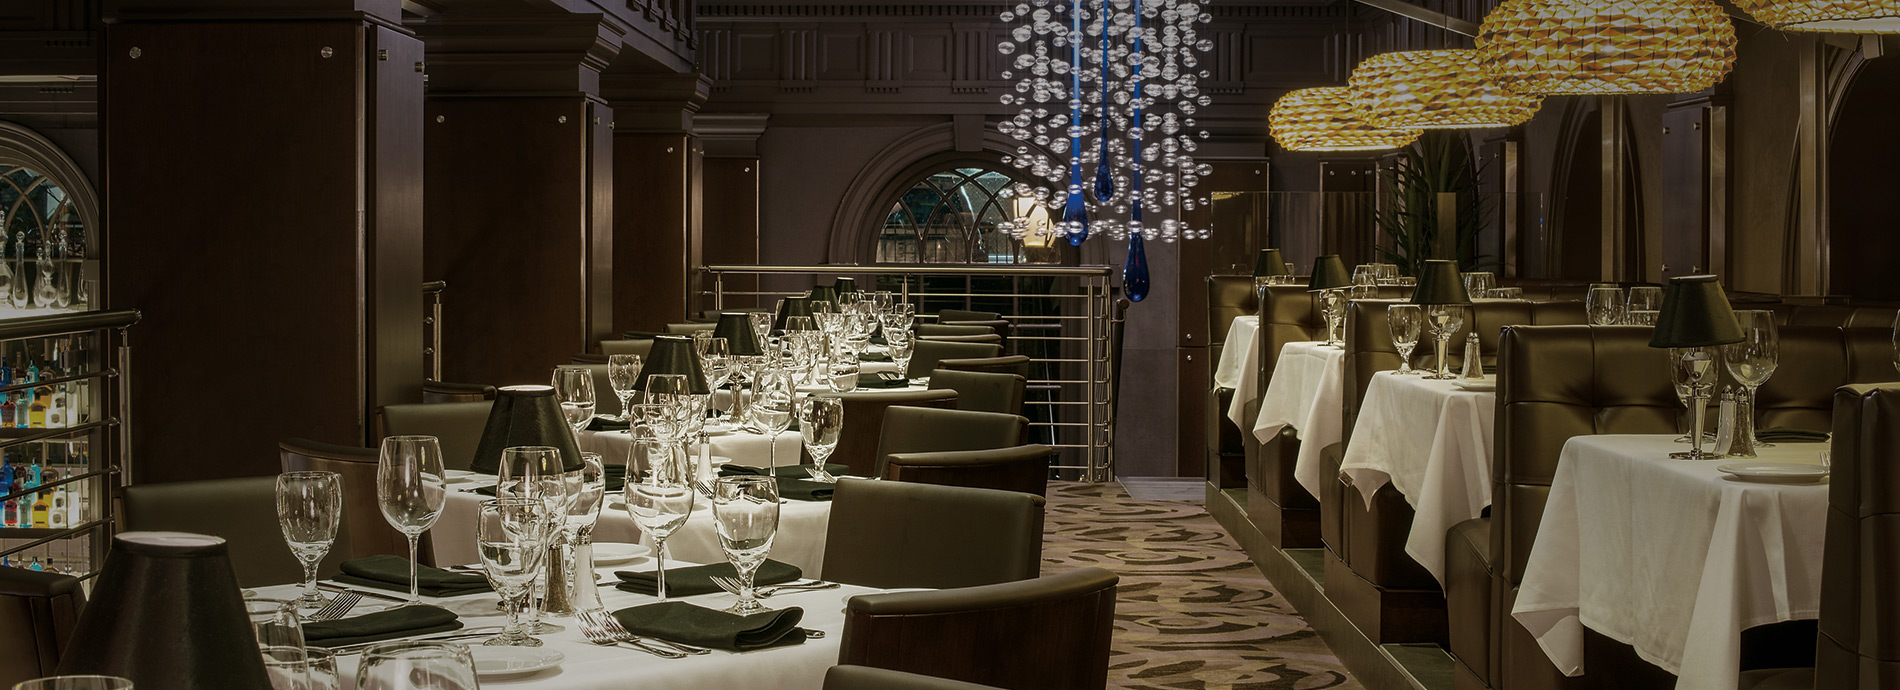 Interior of Ocean Prime restaurant